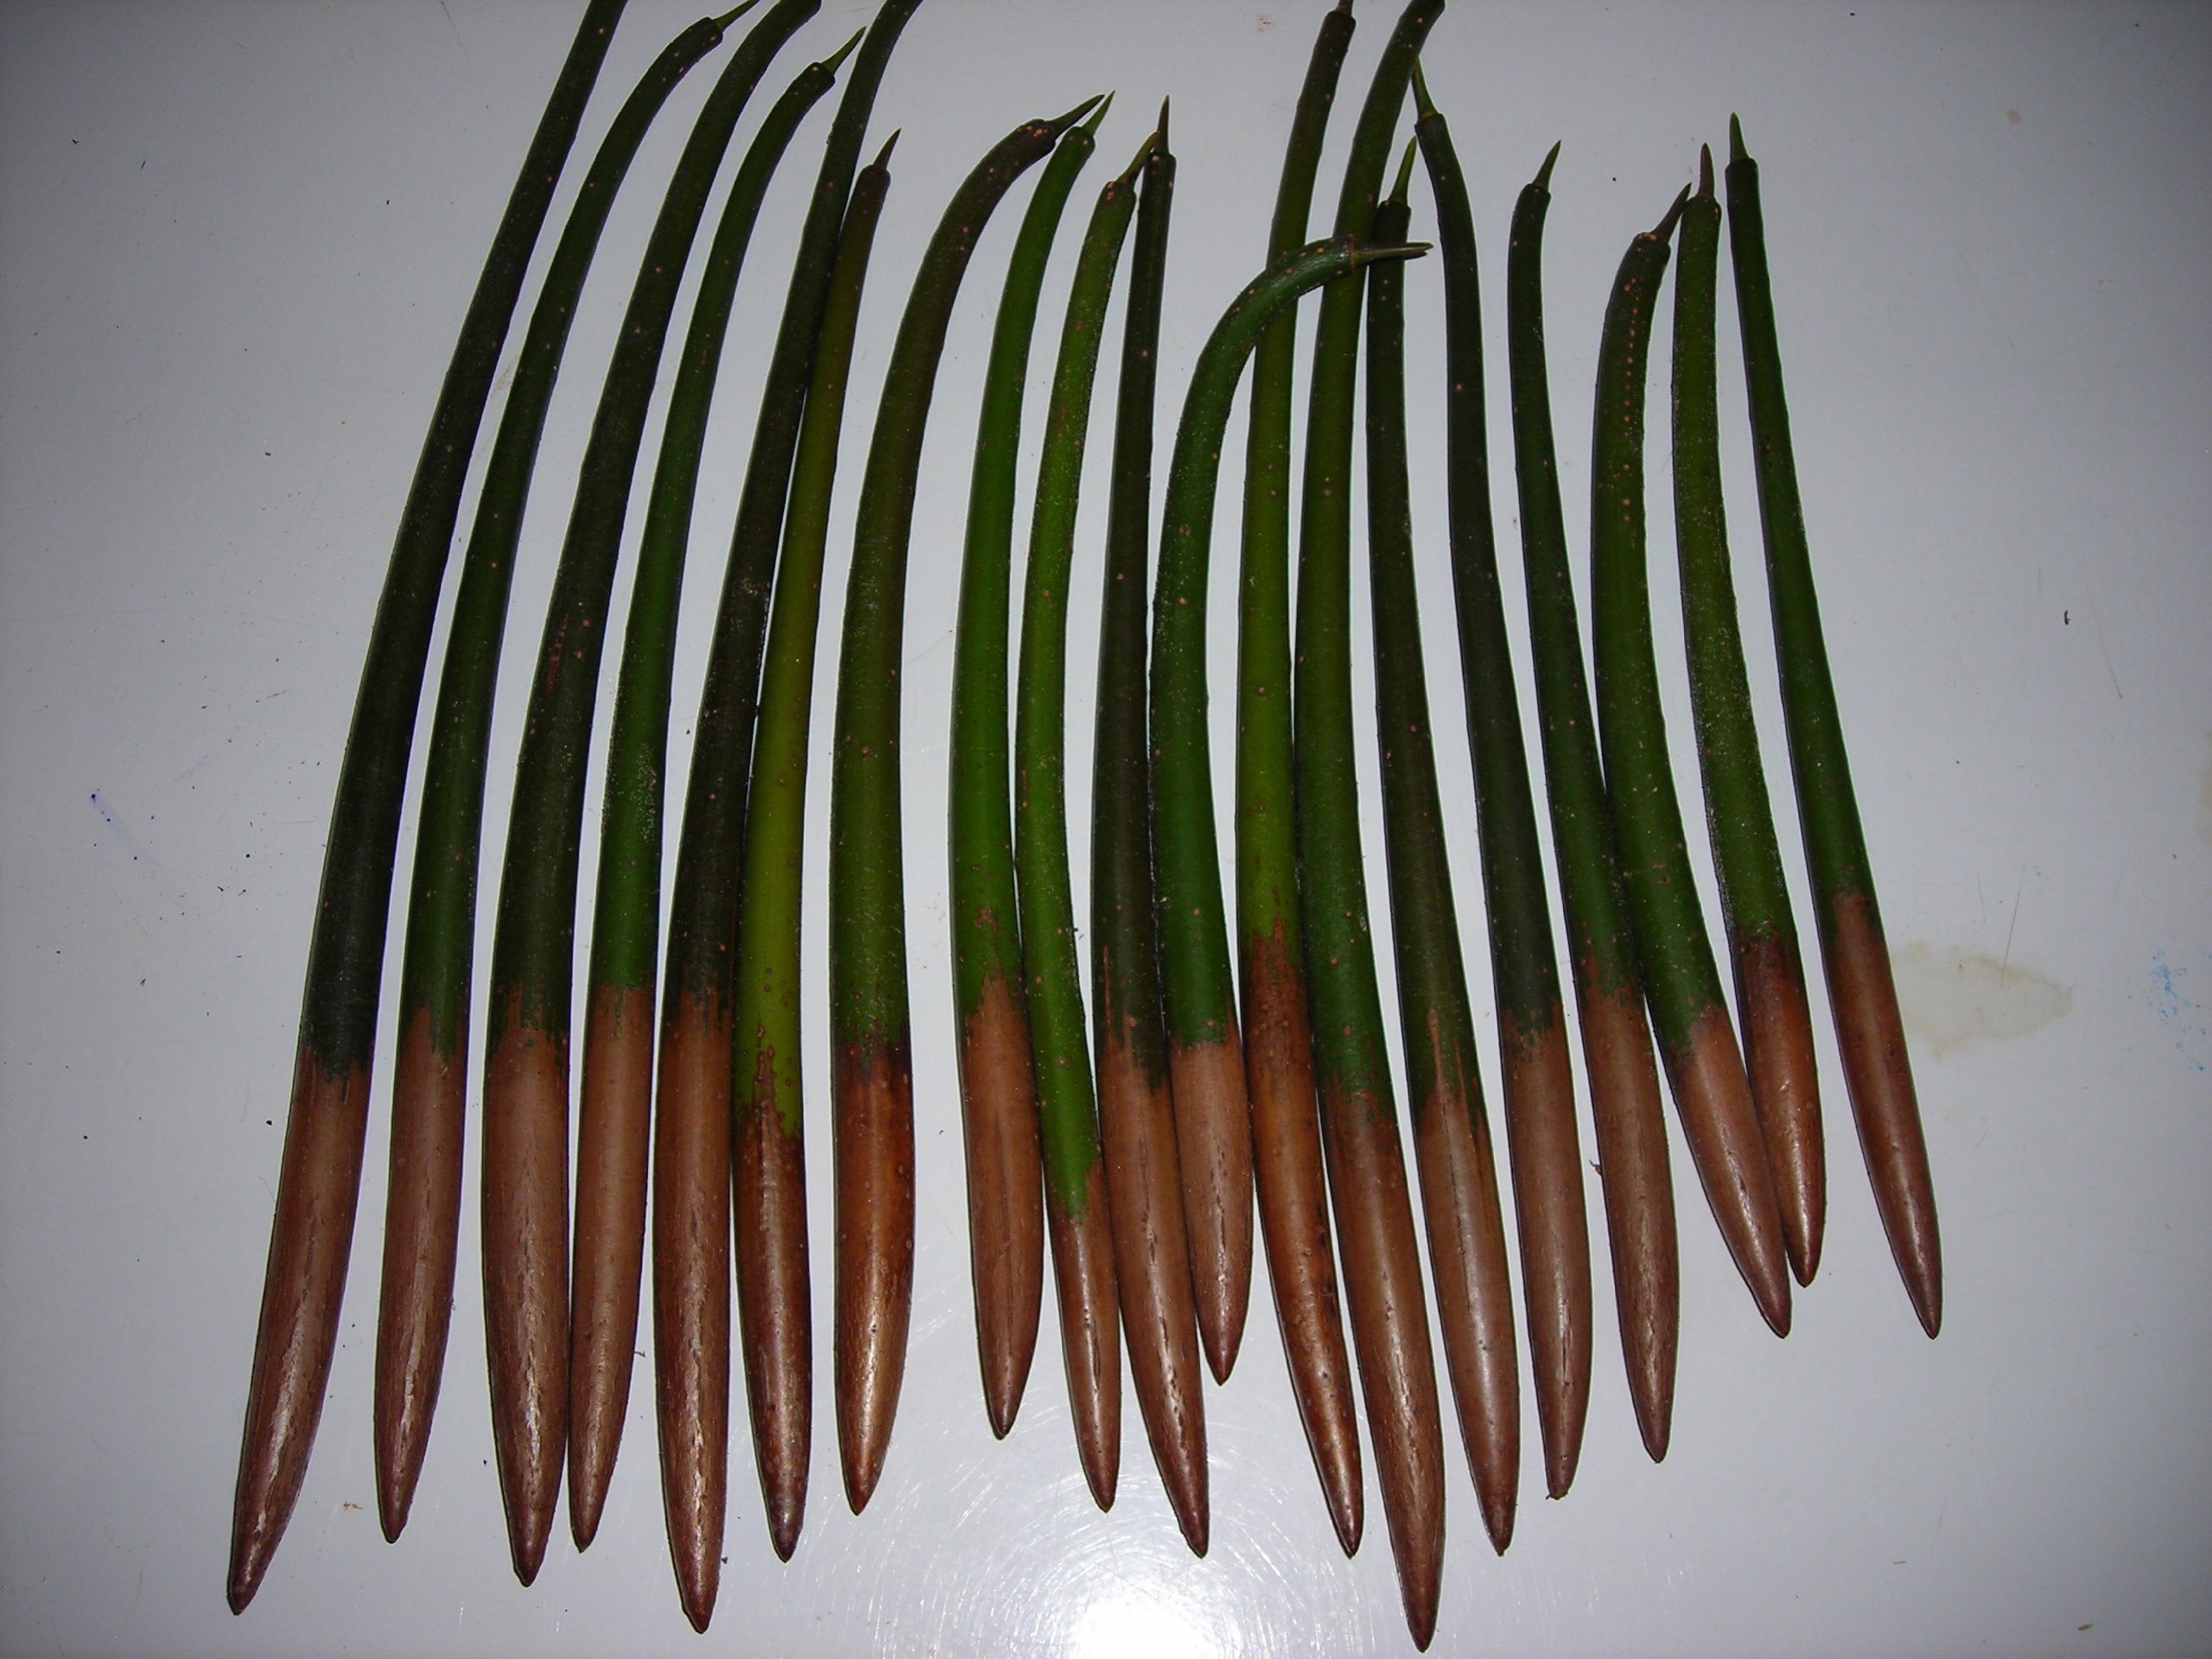 200 RED MANGROVE SEEDS FRESH OR SALT WATER